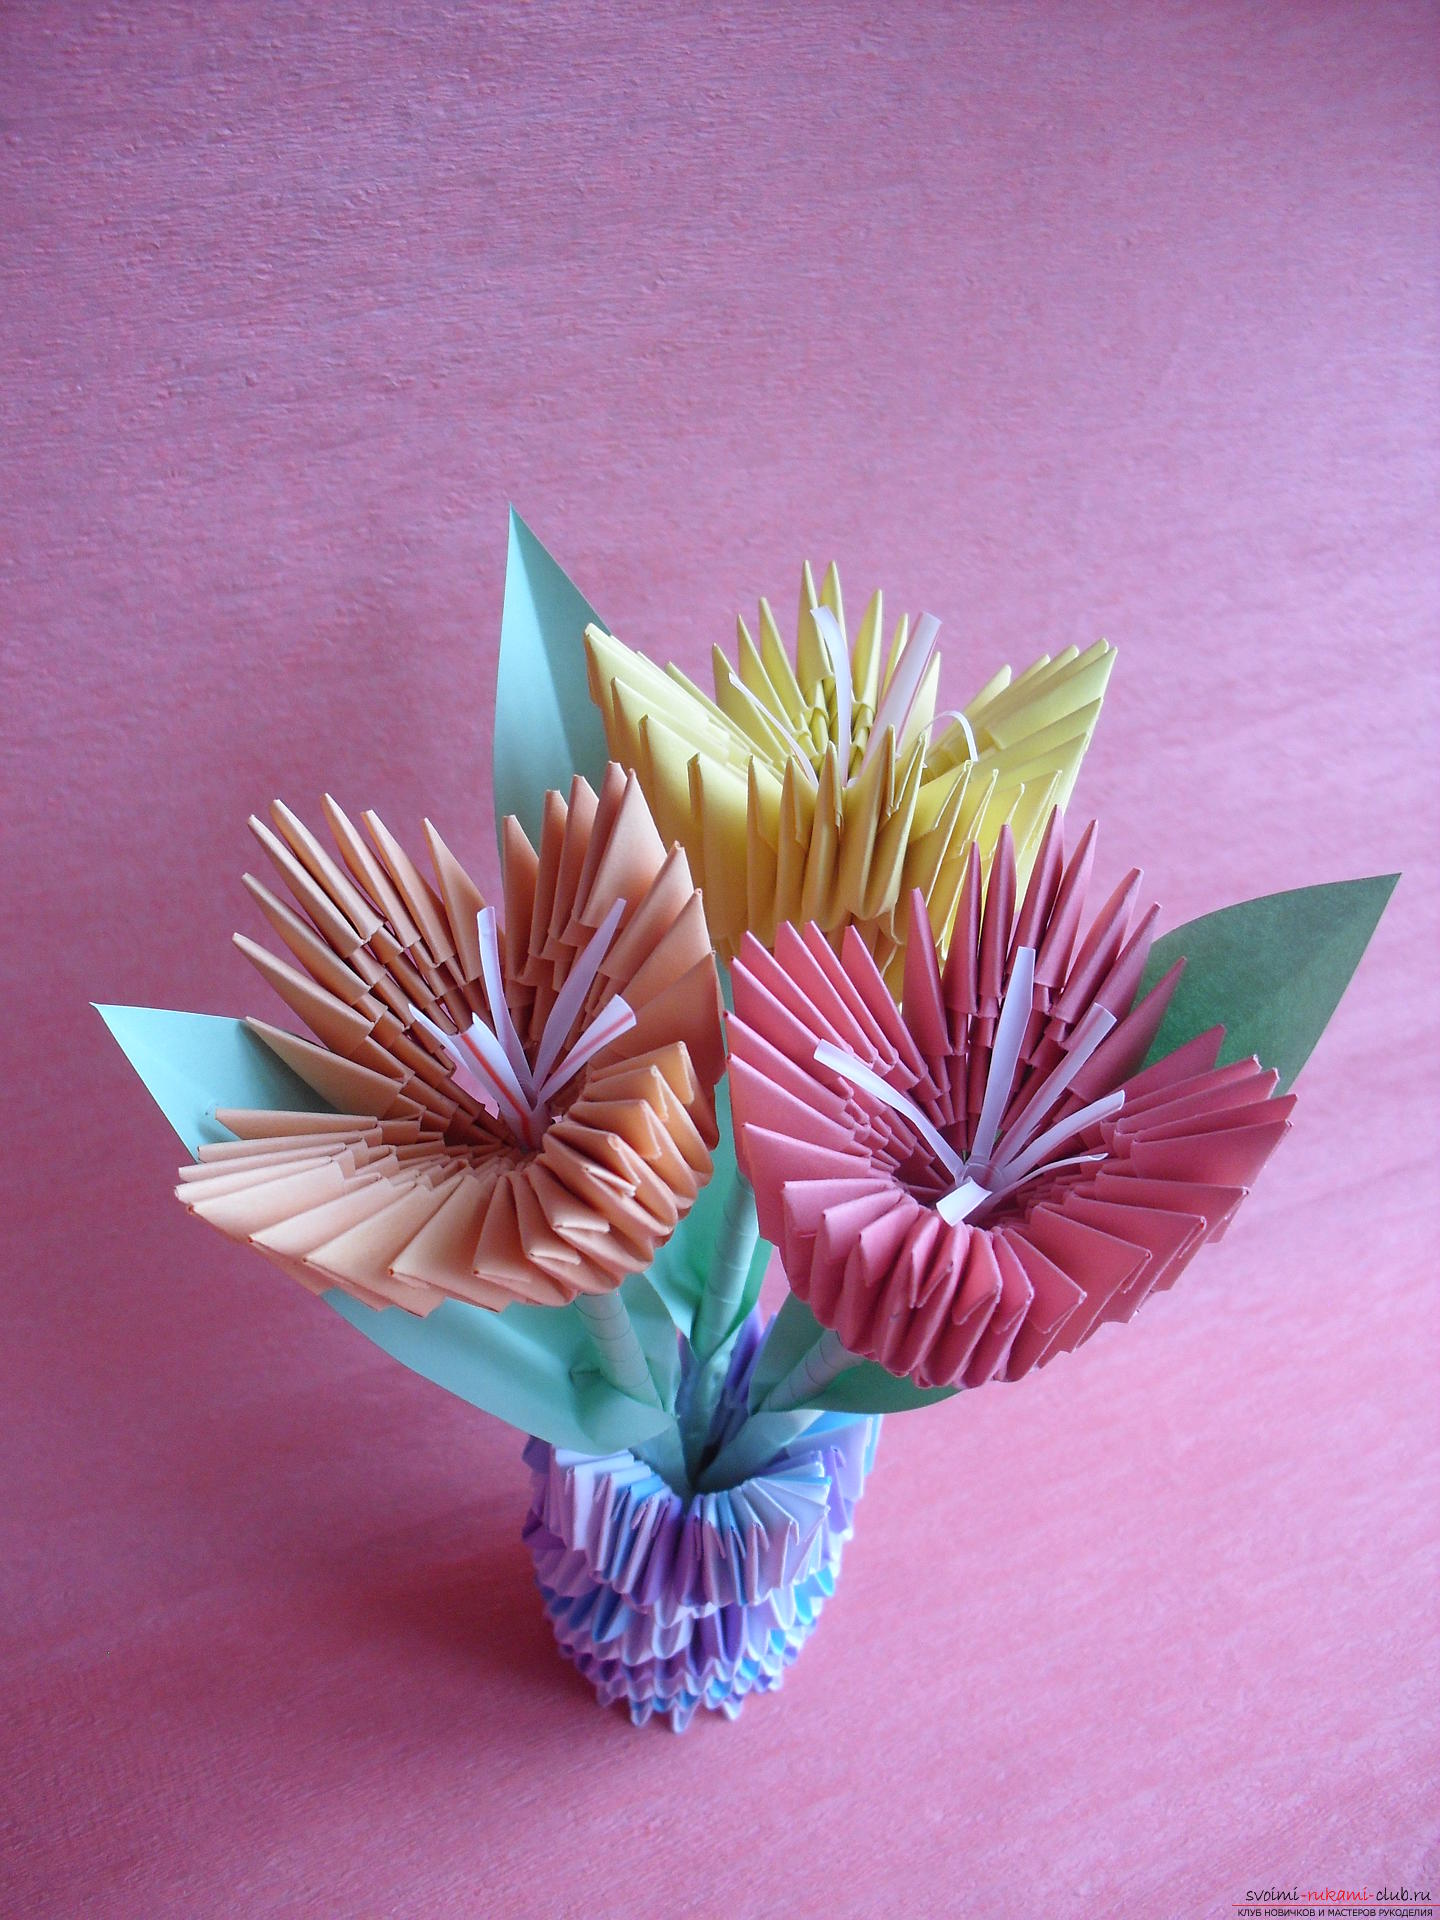 This master class will teach you how to make a vase with tulips made of paper in the technique of modular origami .. Photo # 27